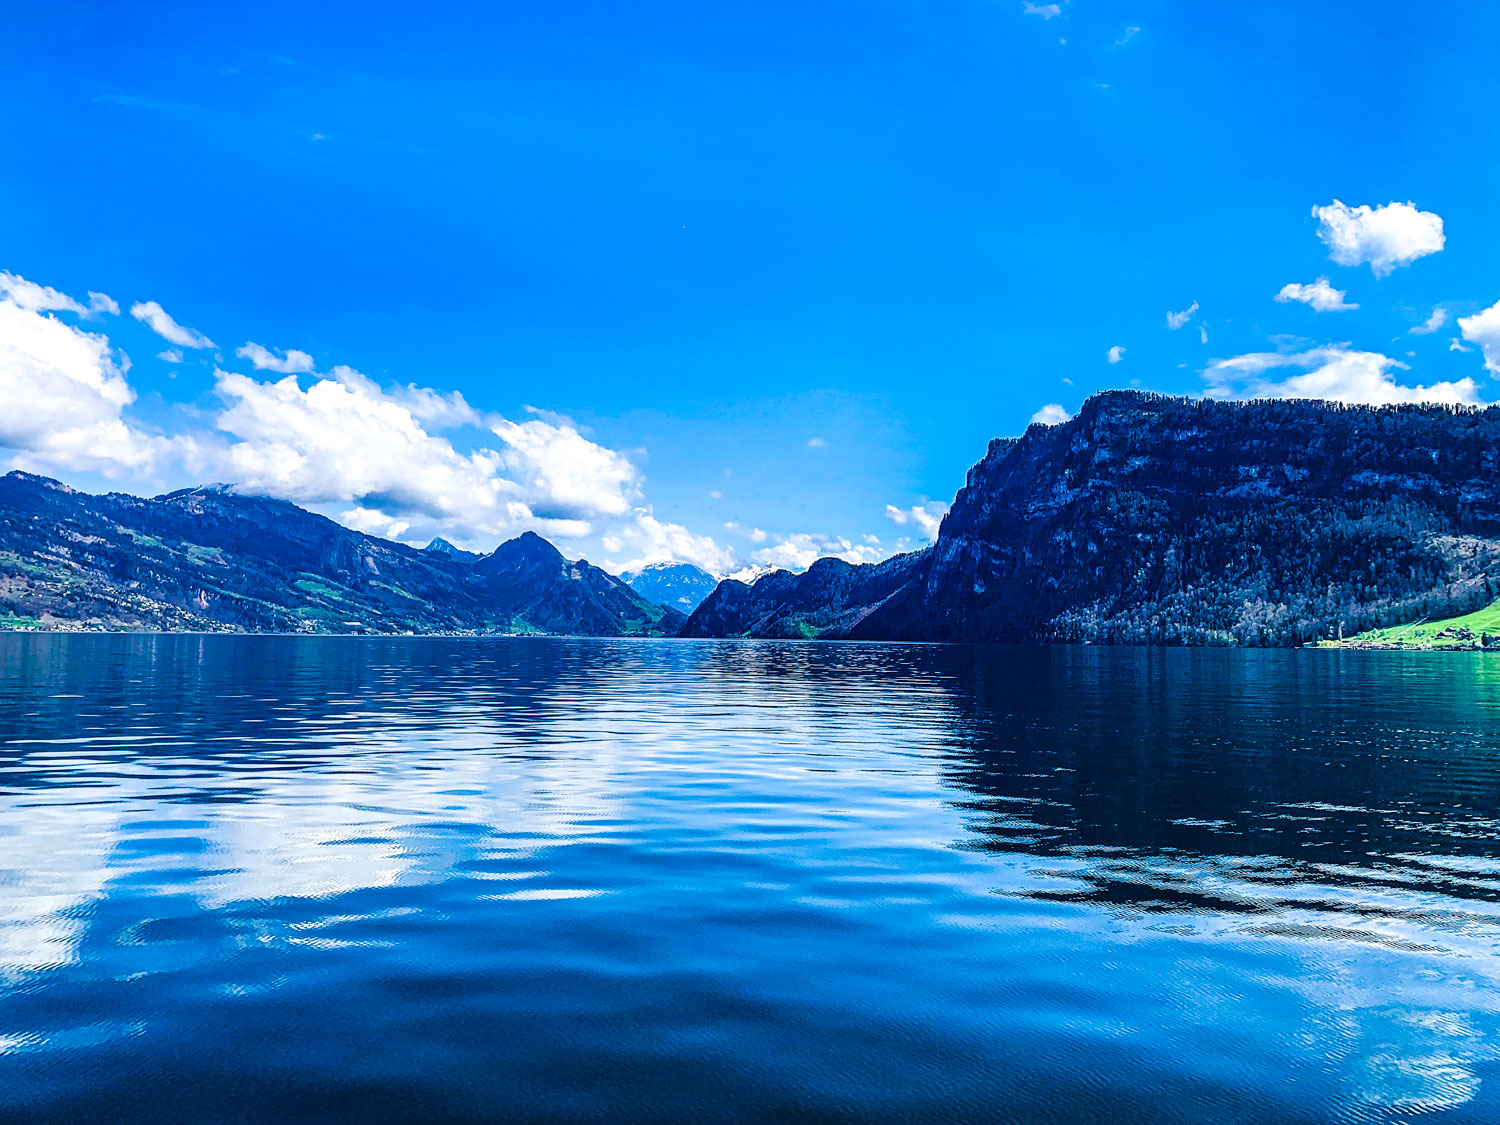 From the boat cruise on Lake Lucerne